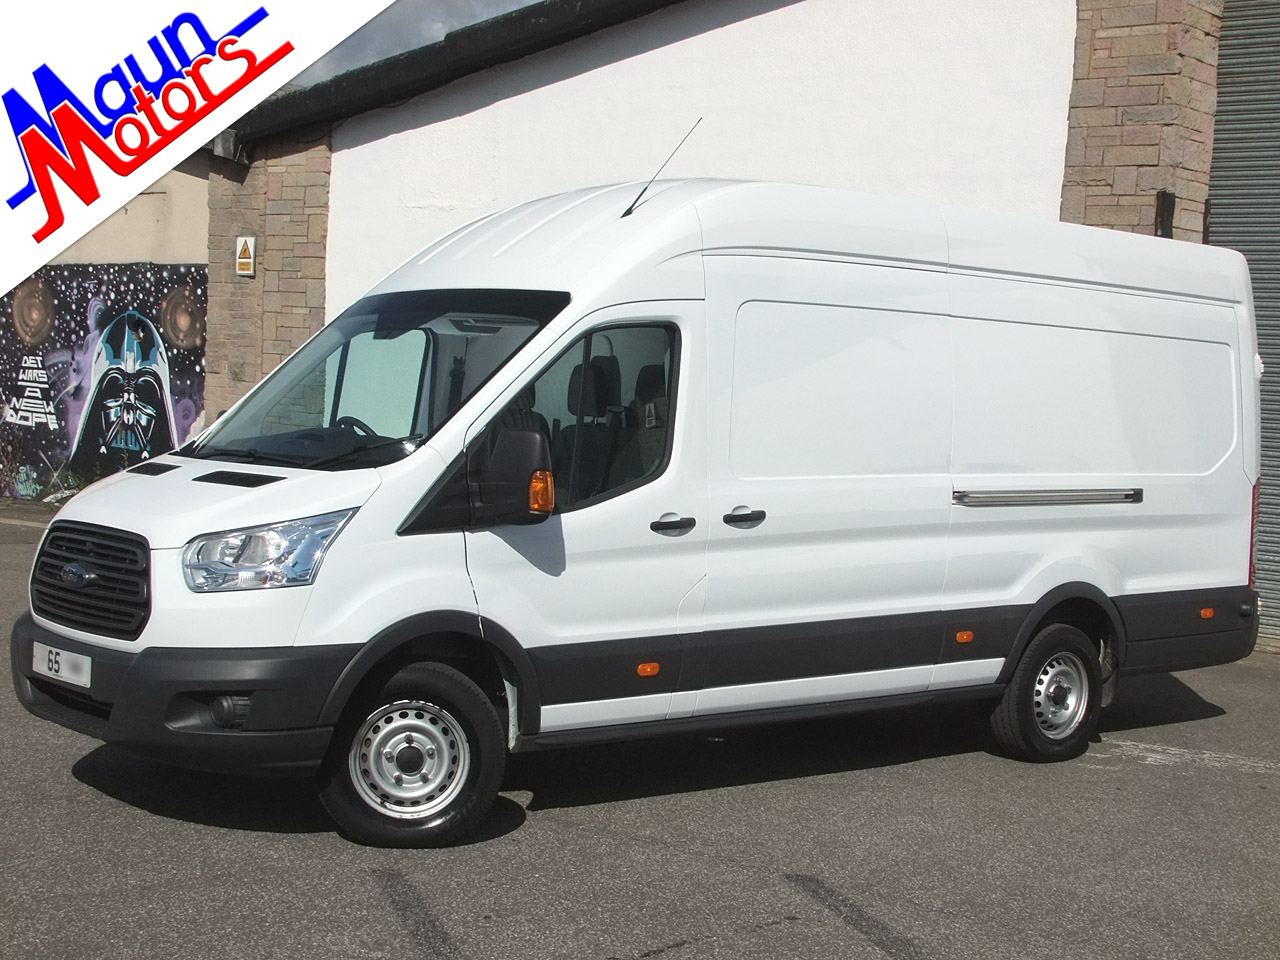 Ford Transit used vans for sale